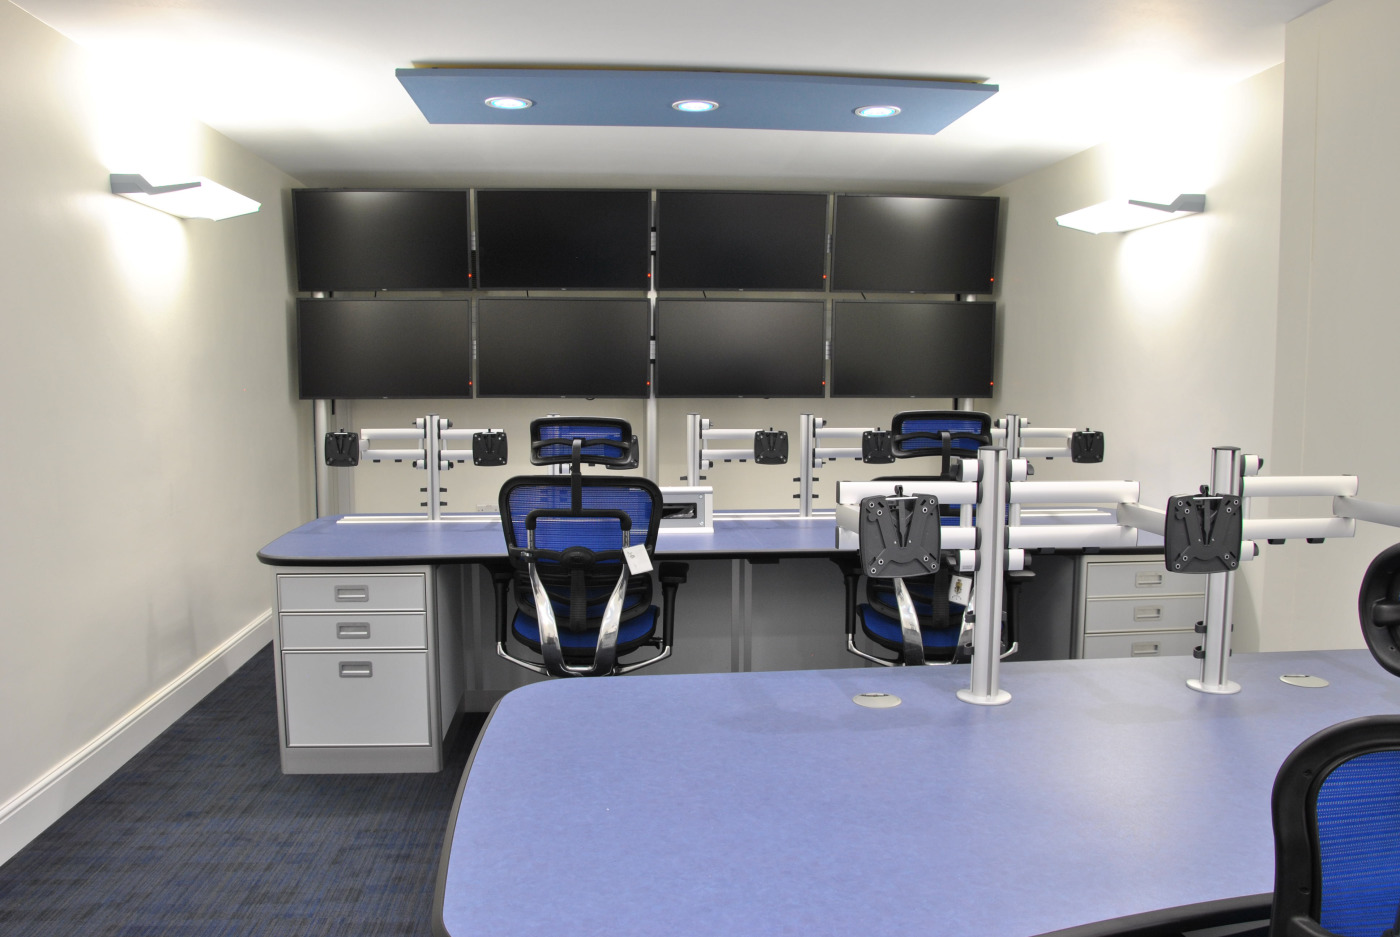 Control Room Furniture for the University of Leicester